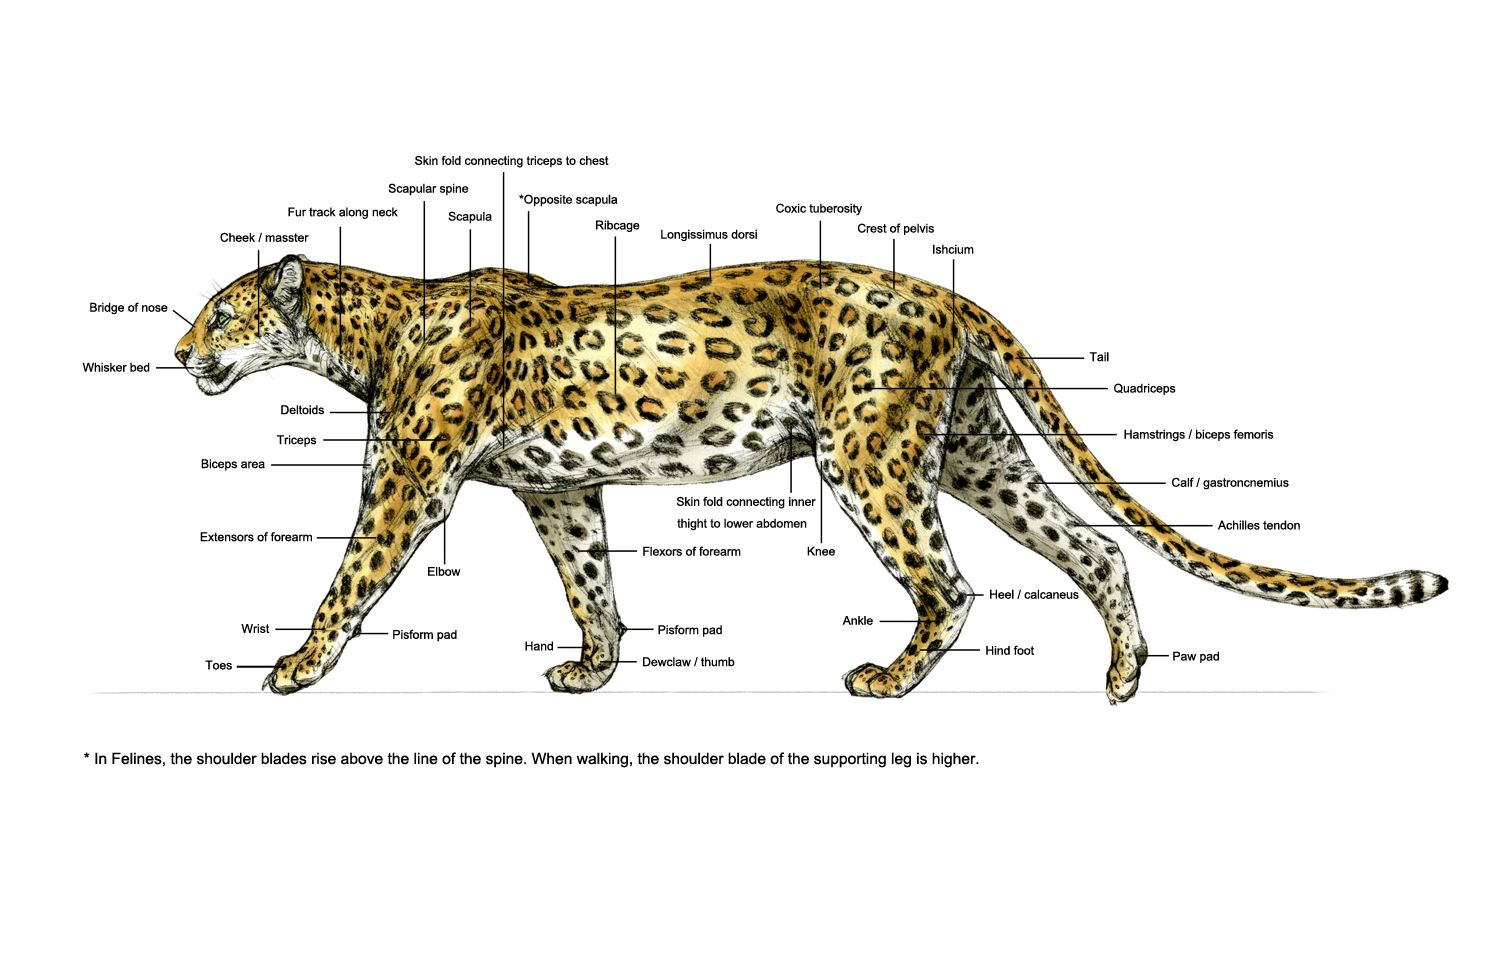 diagram of a leopard spotted leopard ortho surface anatomy apple leopard skeleton diagram diagram of a [ 1500 x 970 Pixel ]